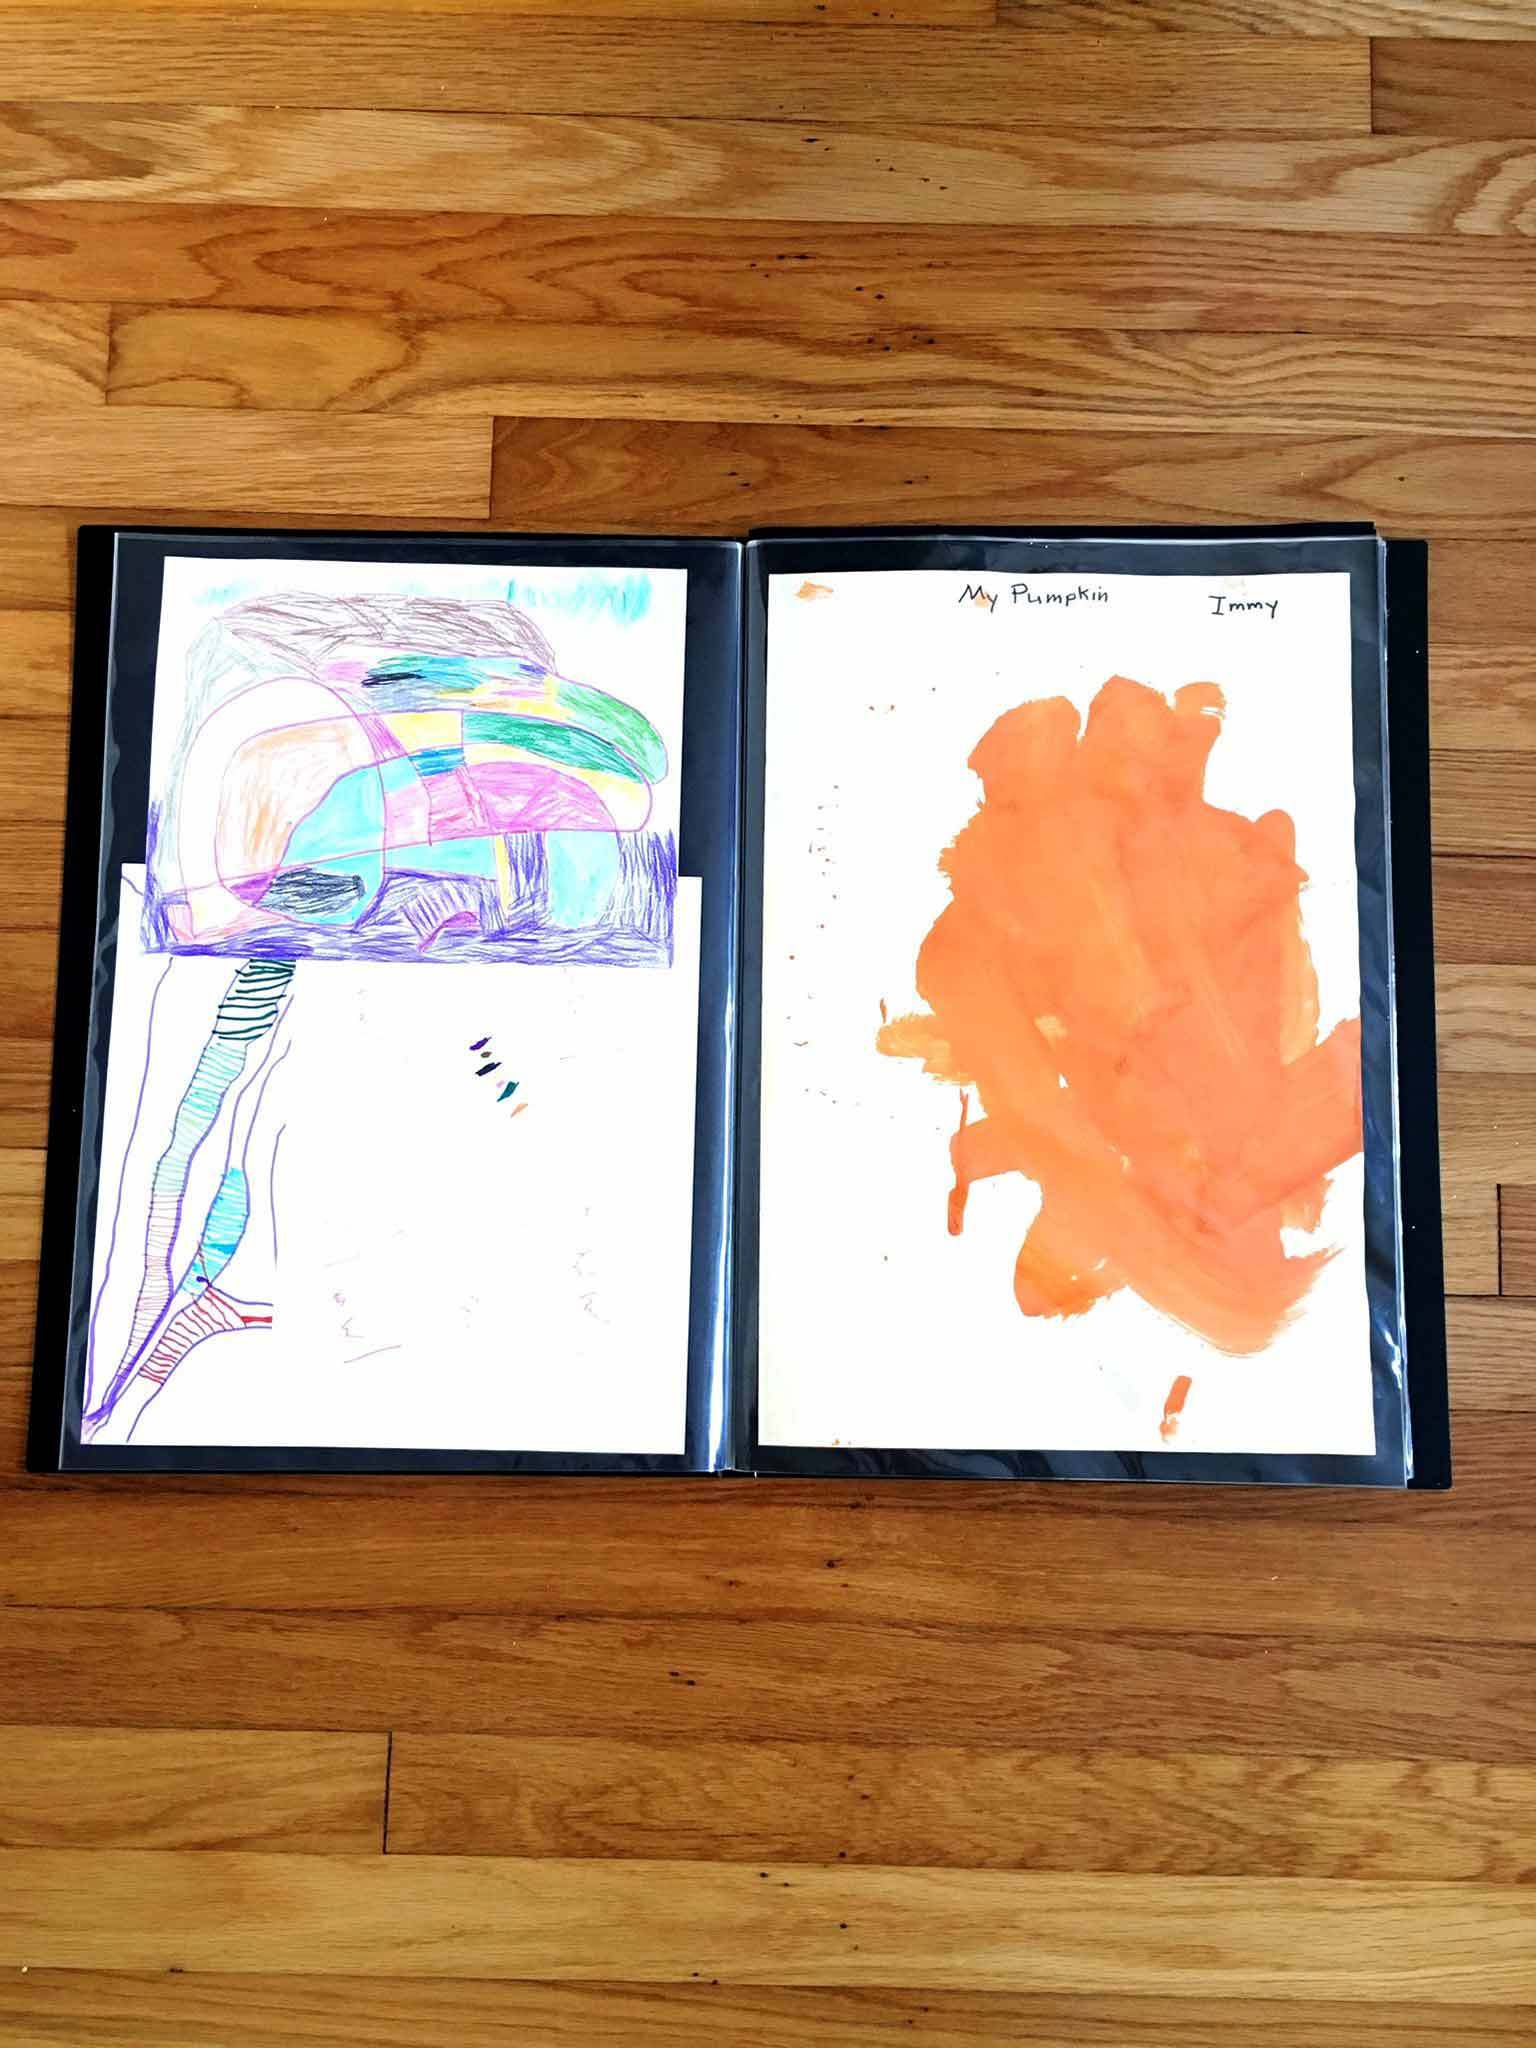 Art portfolio - 4 simple steps to keeping your kids' artwork organized - That Homebird Life Blog